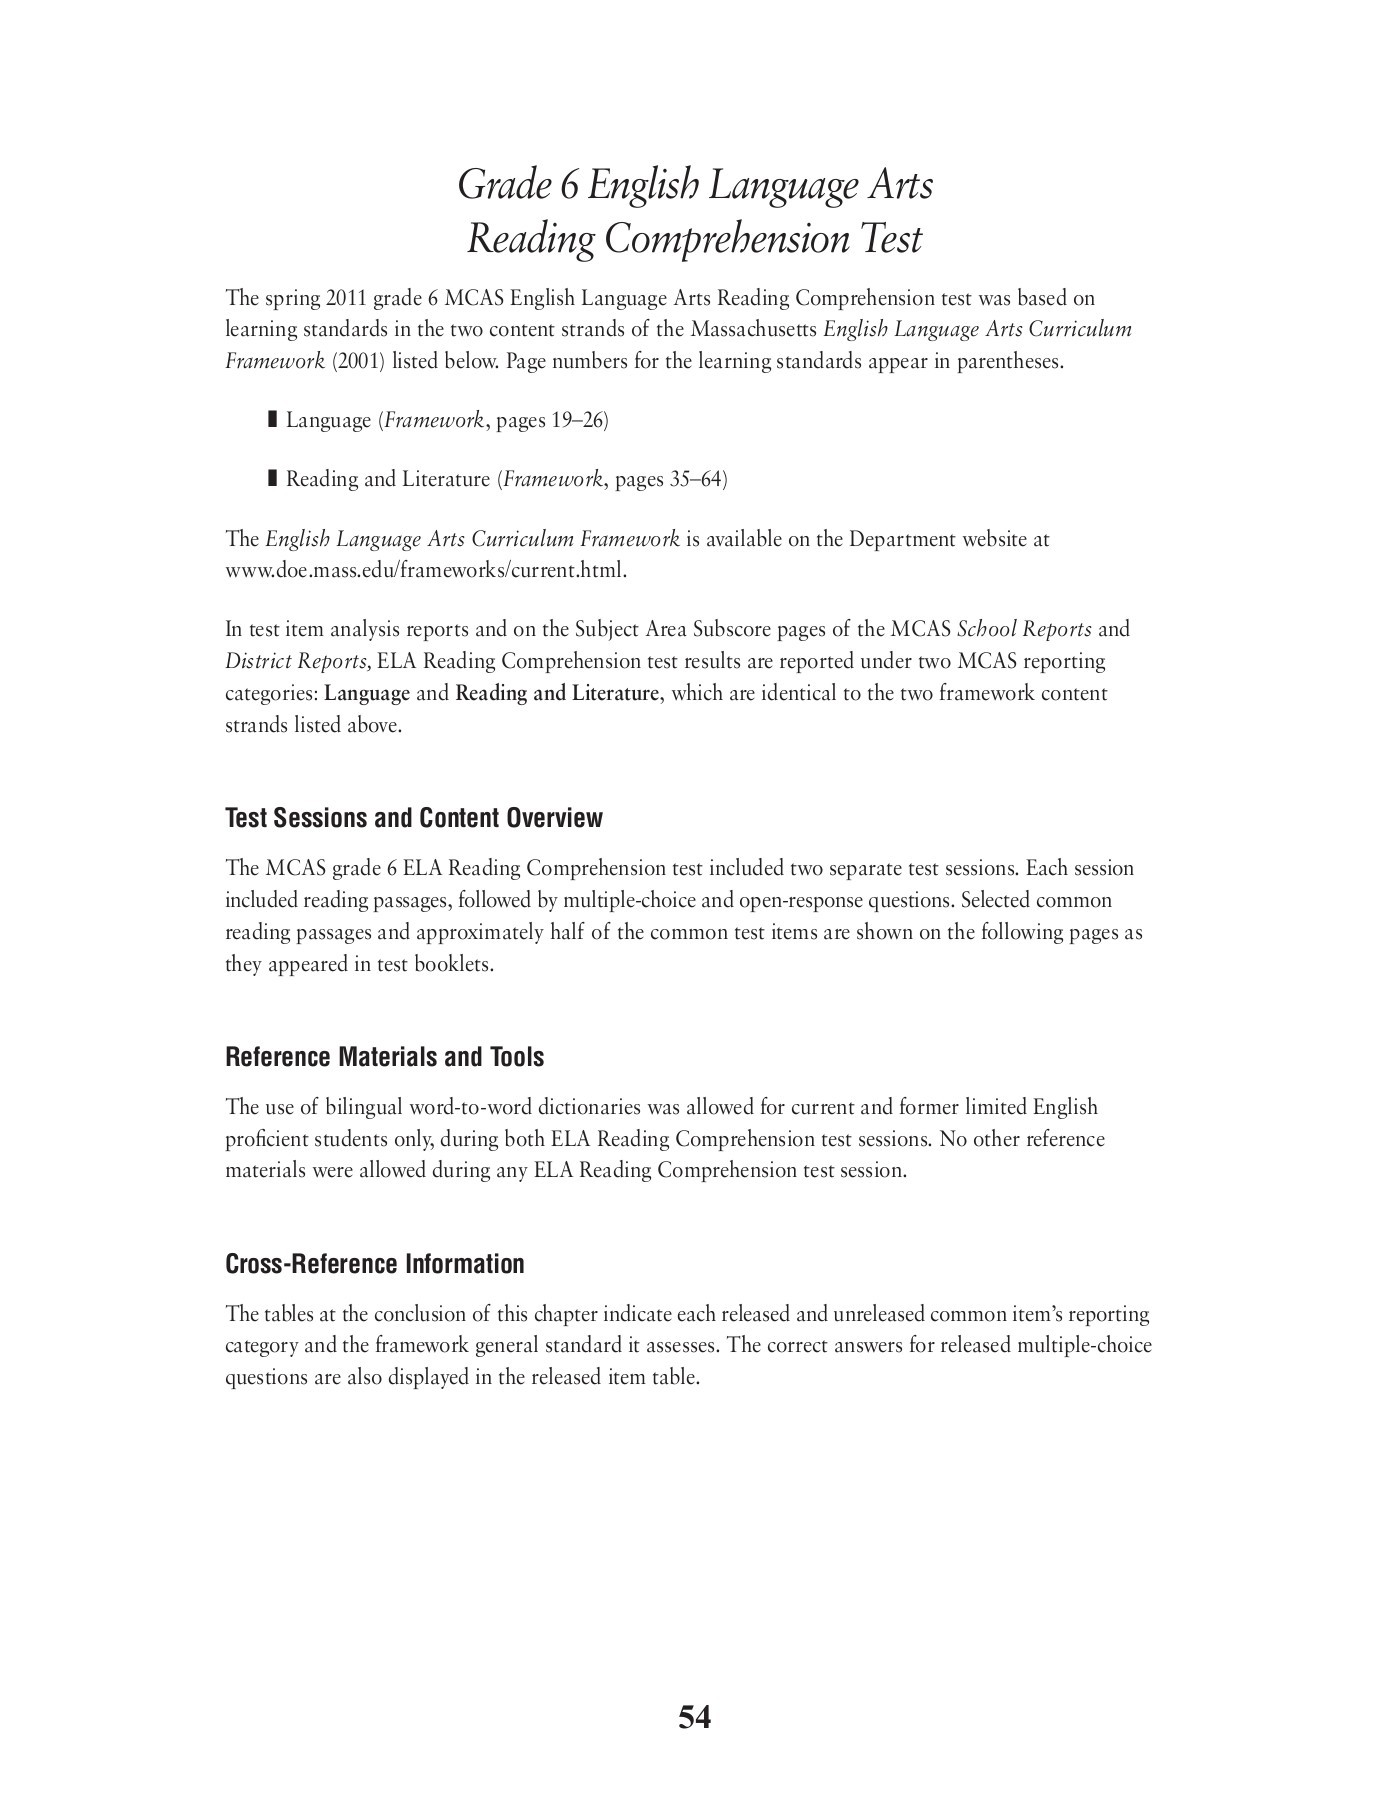 Reading Comprehensions Year 6